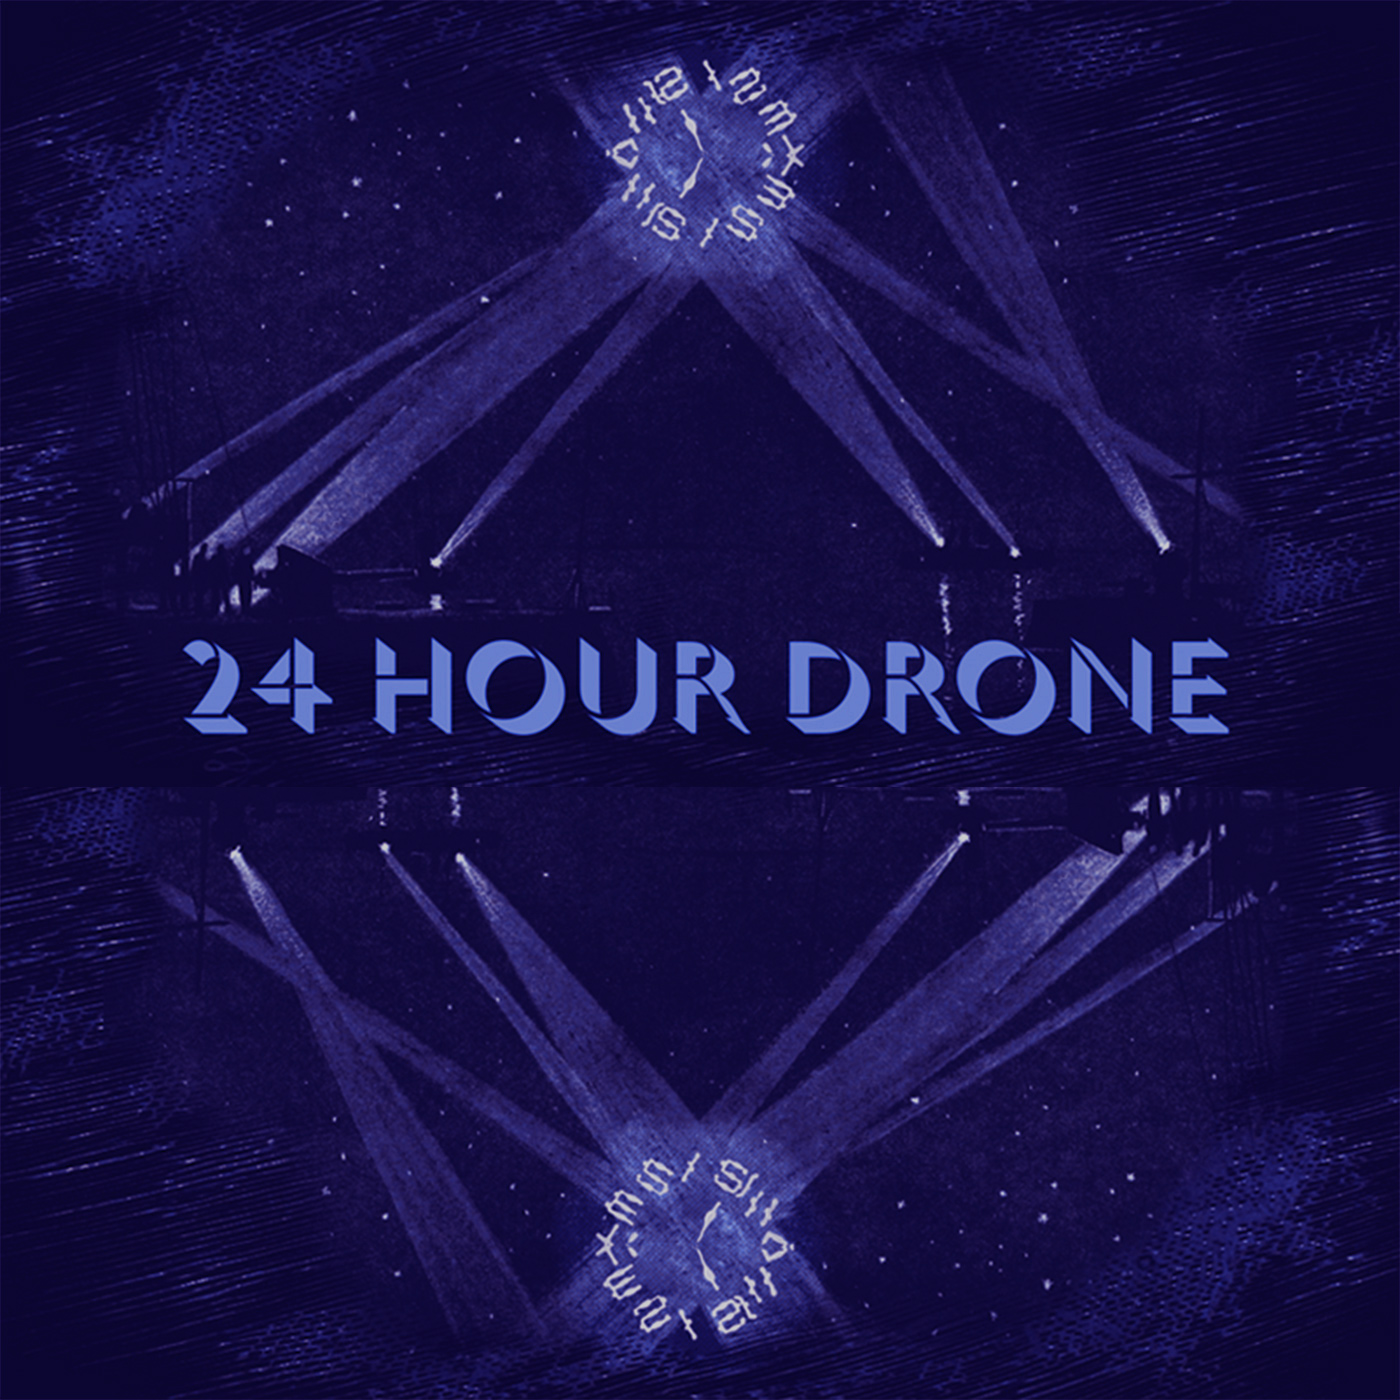 24 Hour Drone Poster